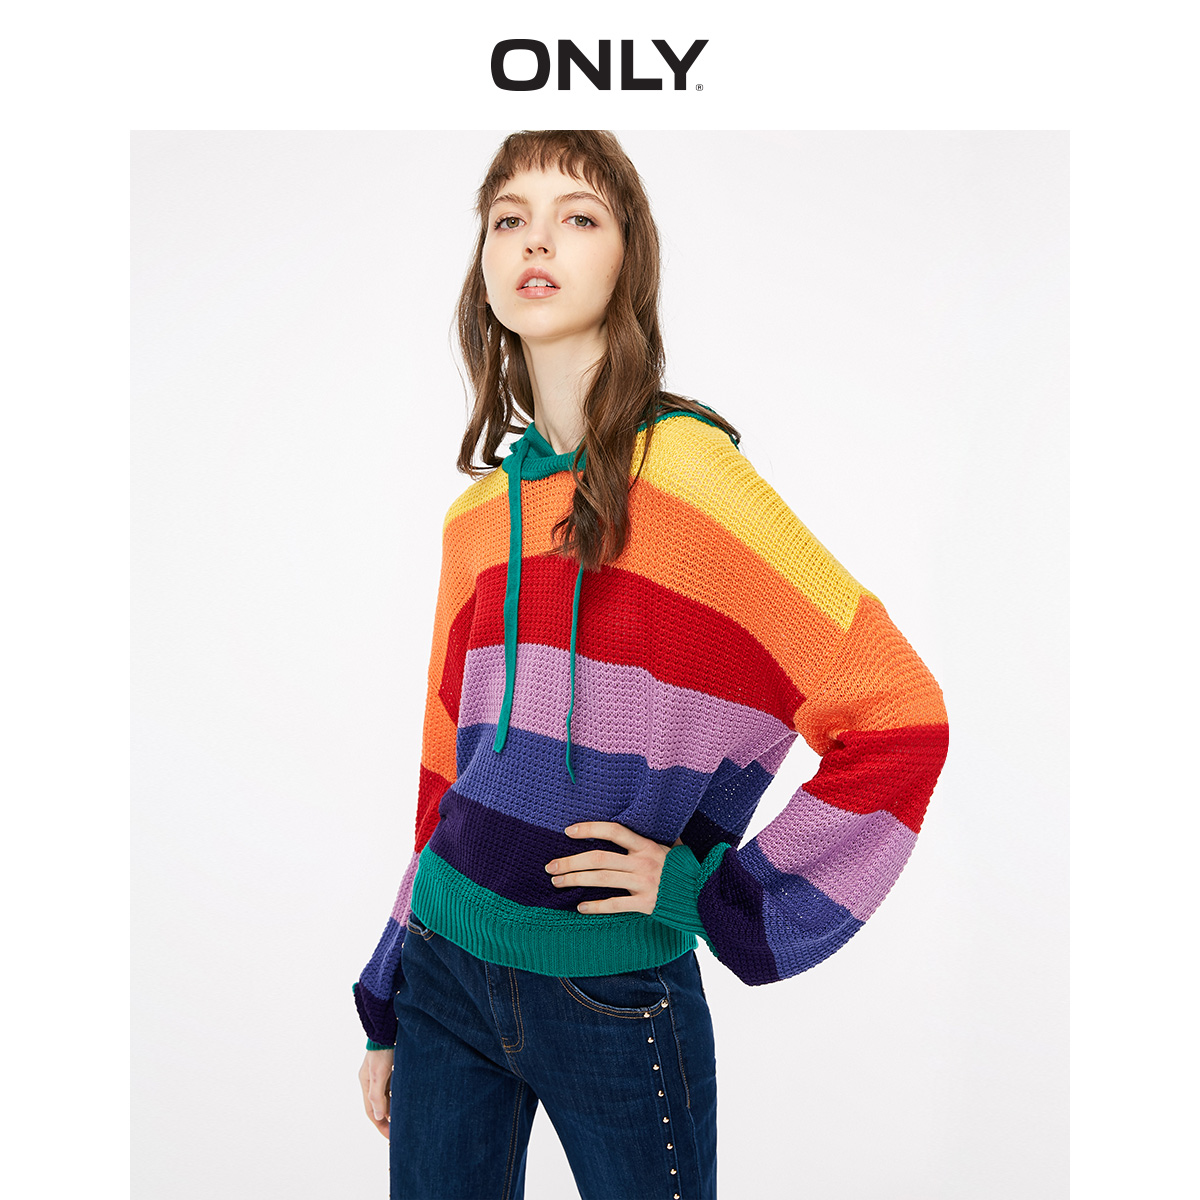 ONLY Summer New Color Mosaic Hooded Sweater Women   |  118324601